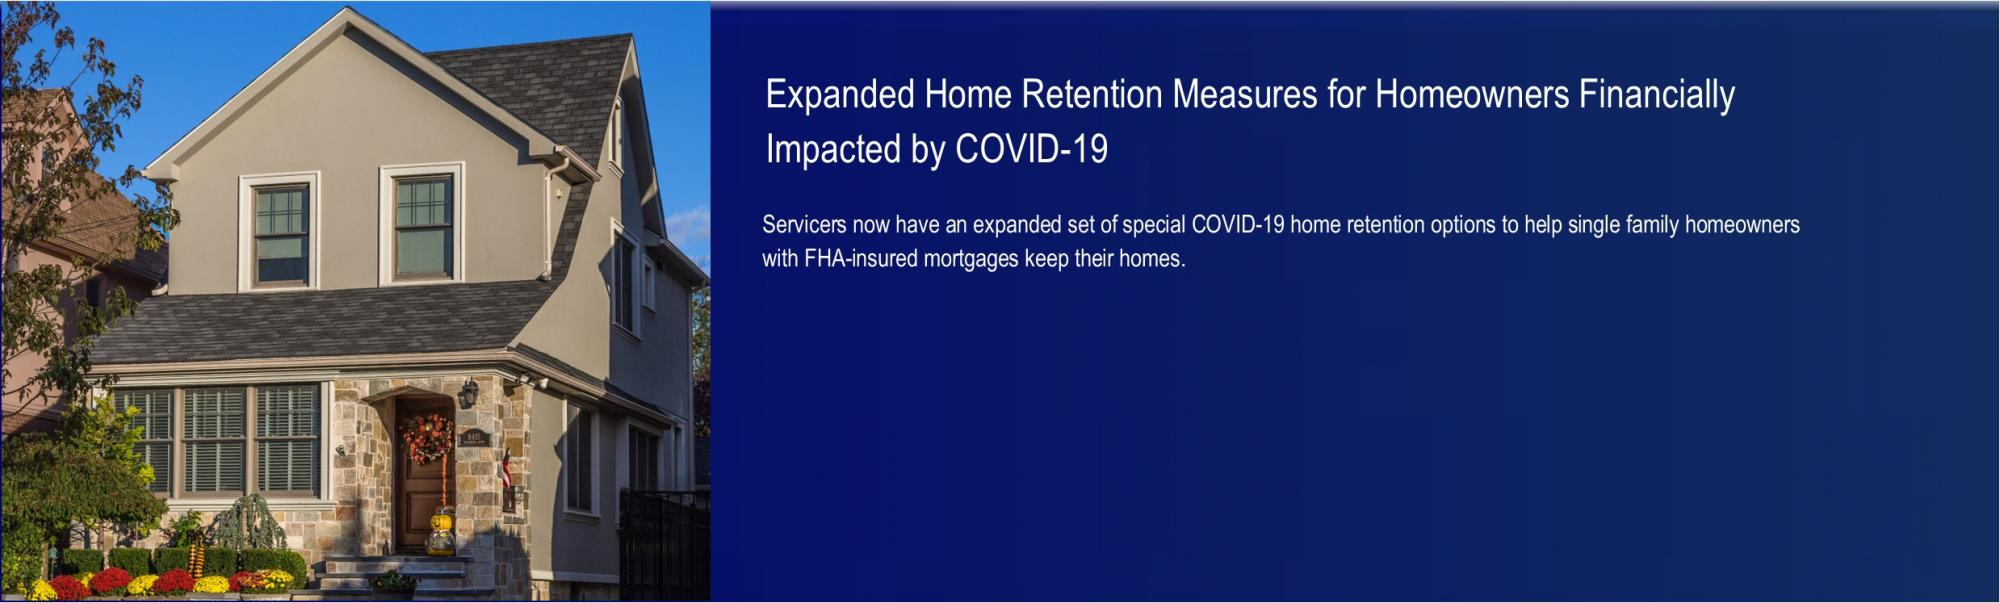 [Expanded Home Retention Measures for Homeowners Financially Impacted by COVID-19].